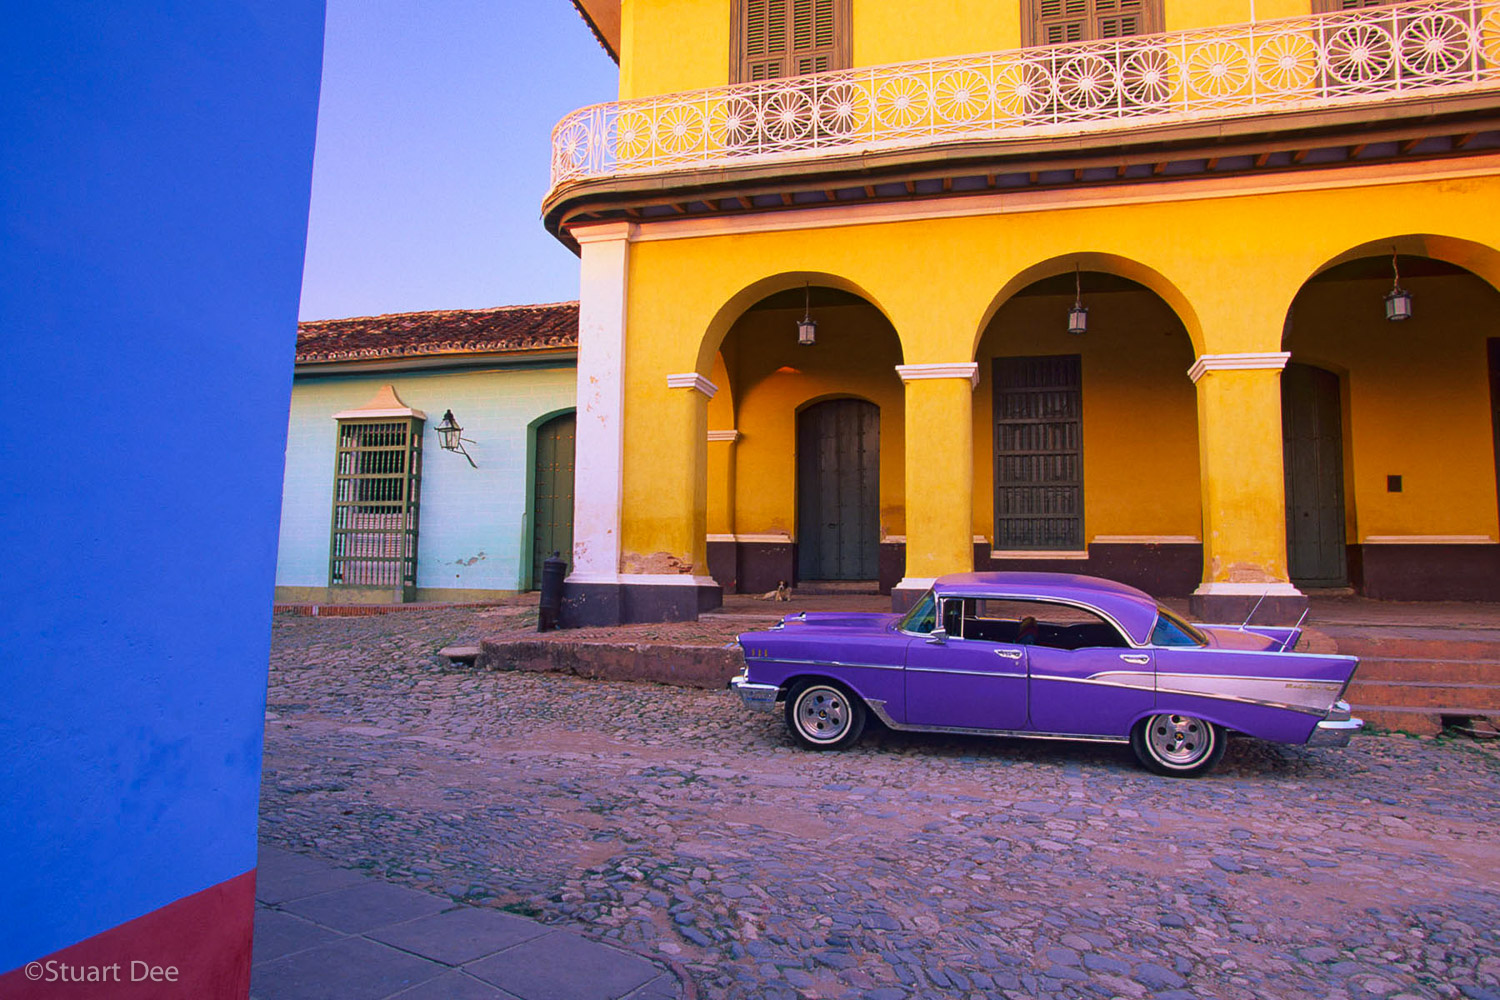 A purple 1957 Chevrolet Bel Air hardtop on a street with colorful facades, in Trinidad, Cuba.